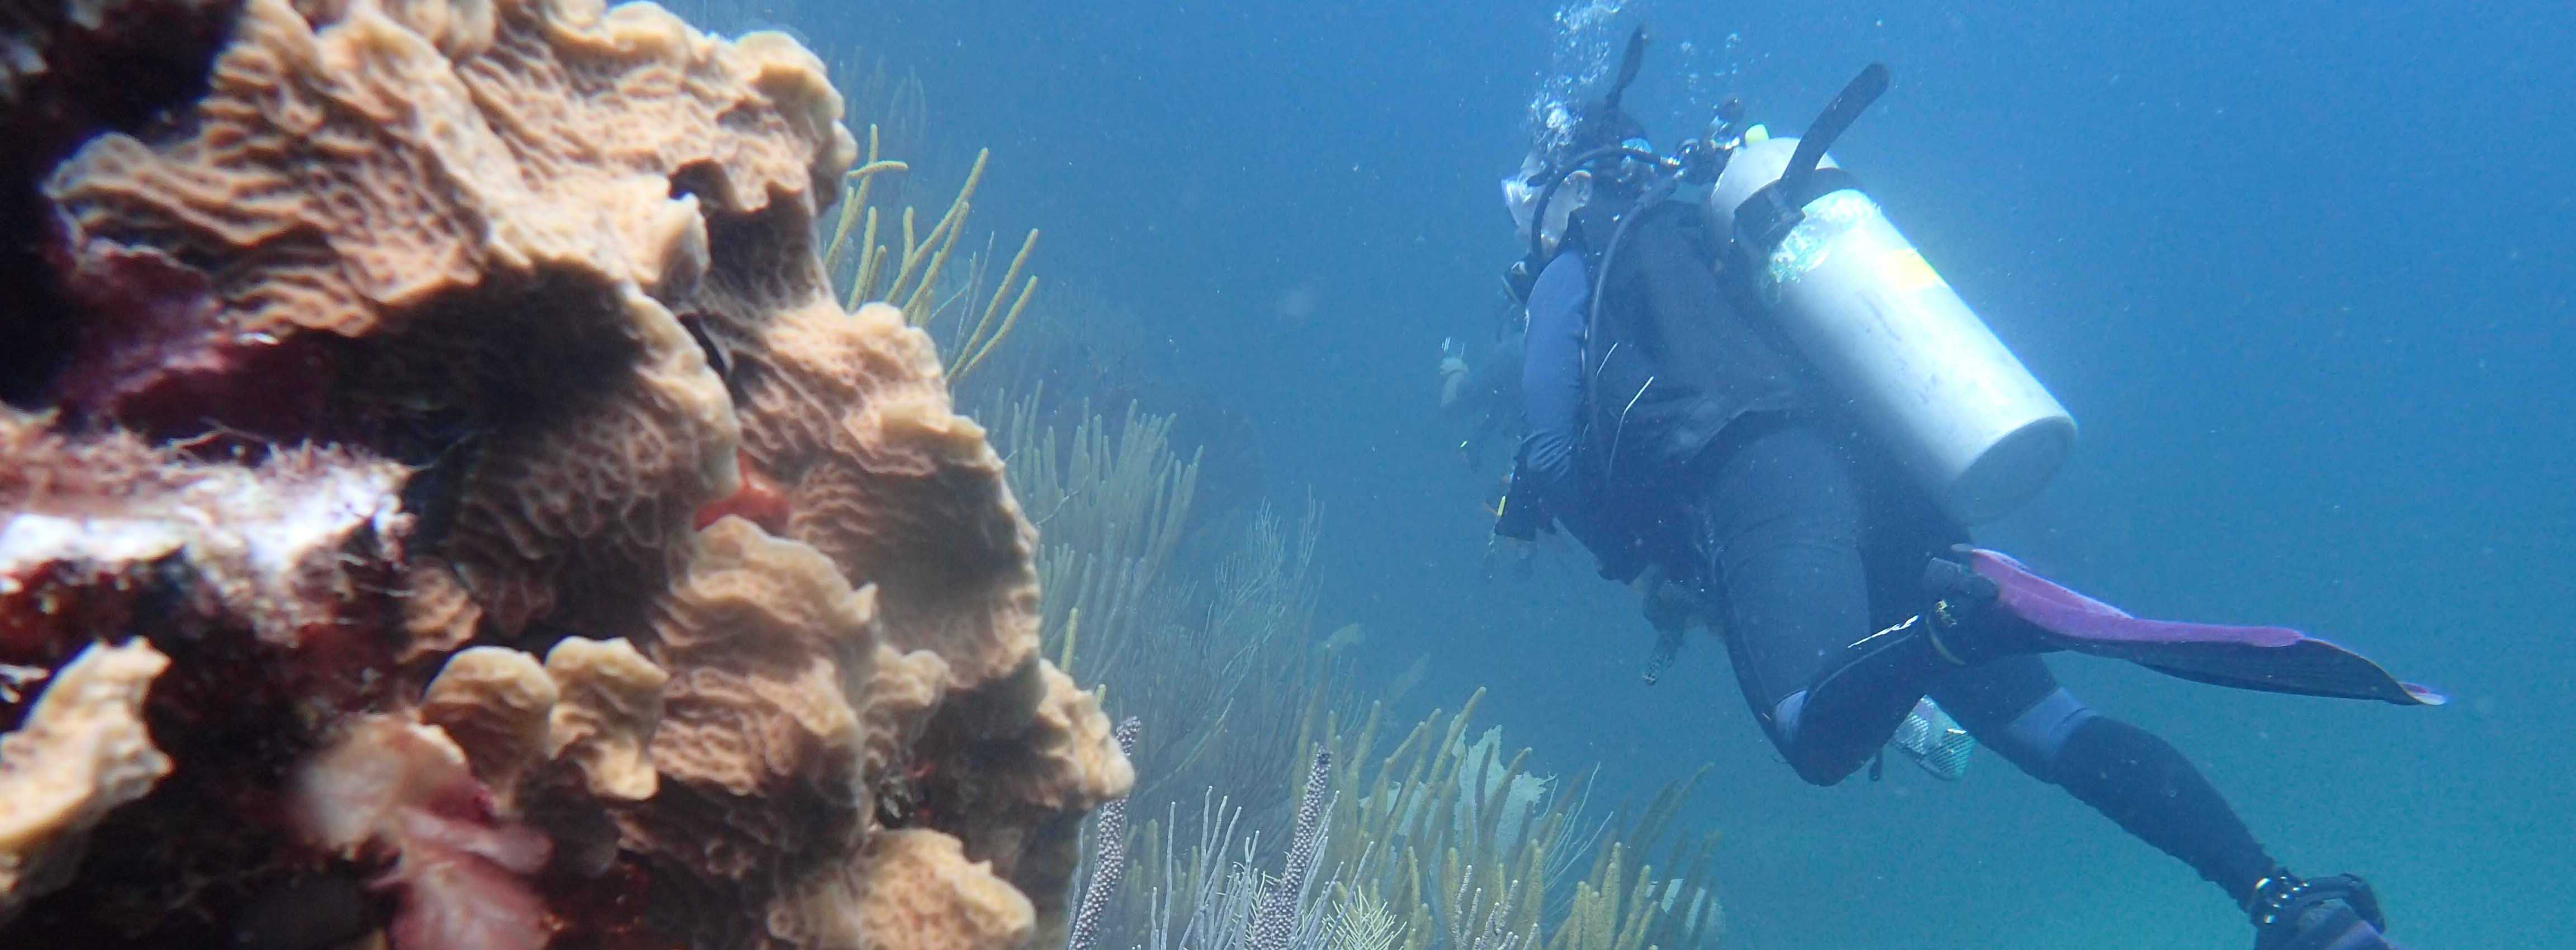 U.S. Virgin Islands Divers are Eyes on Coral Reef Health